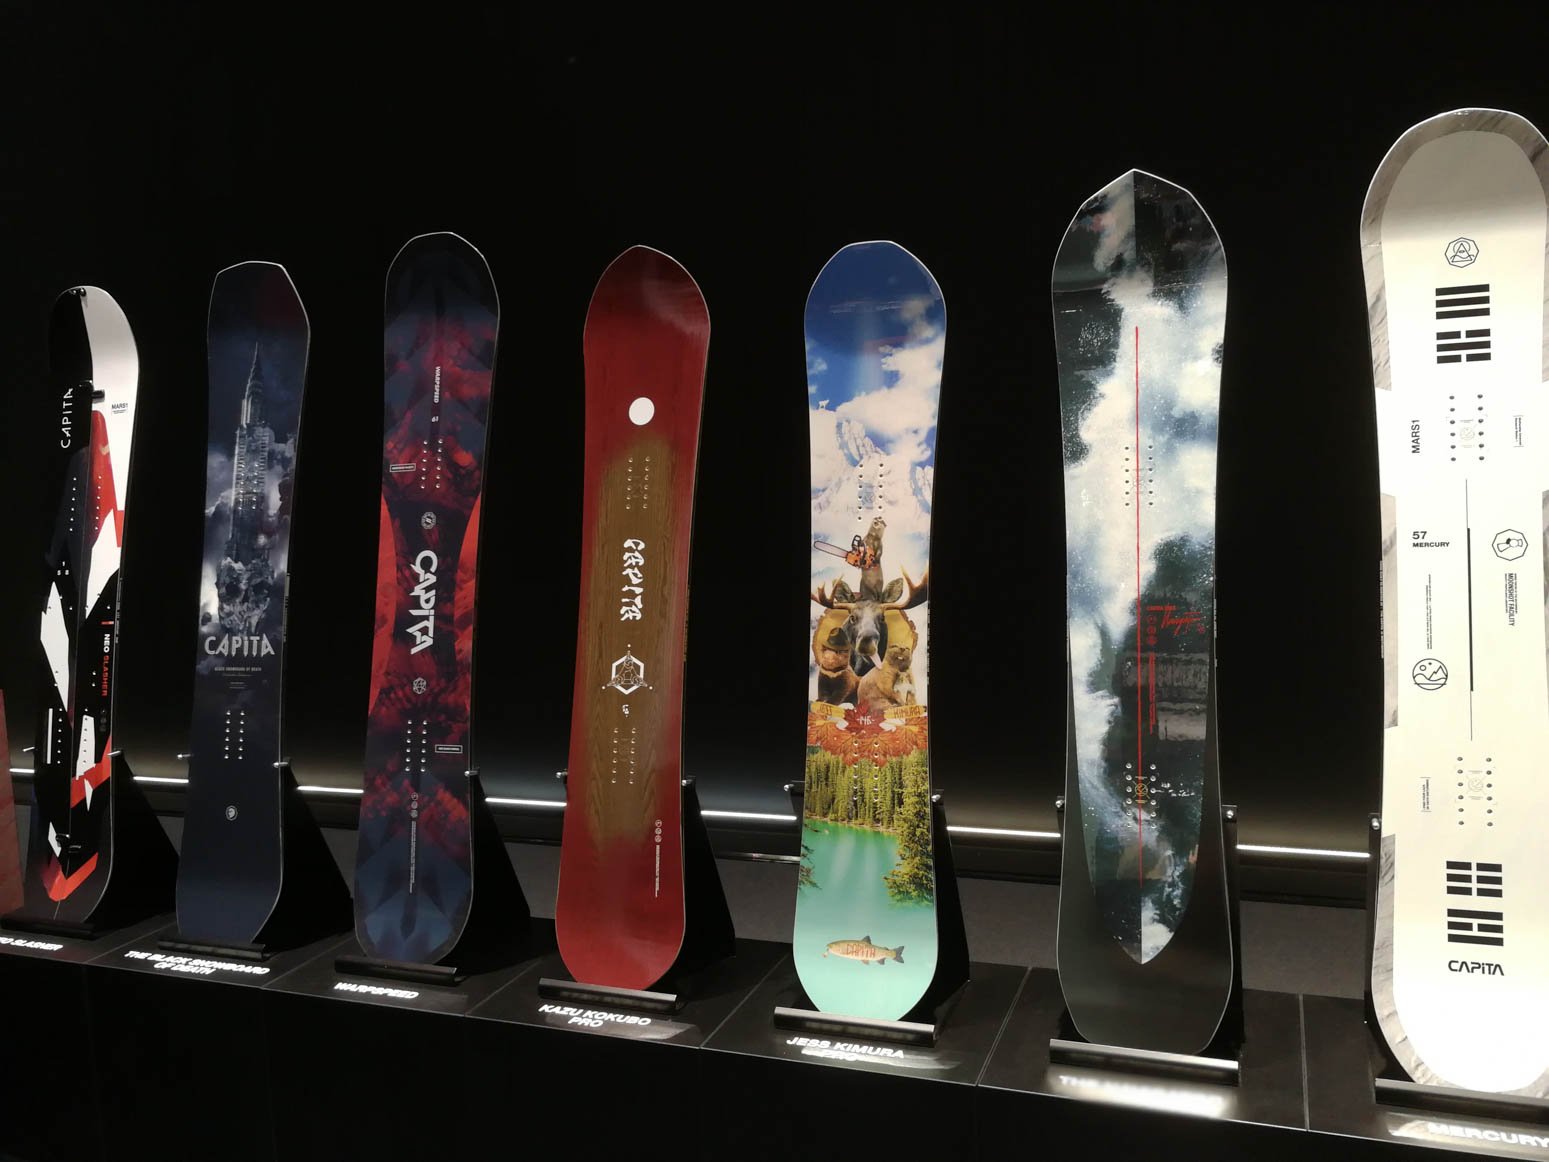 Capita (links nach rechts): Neo Slasher, Black Snowboard of Death 18/19, Warpspeed, Kazu Kobubo Pro, Jess Kimura Pro, The Navigator, Mercury